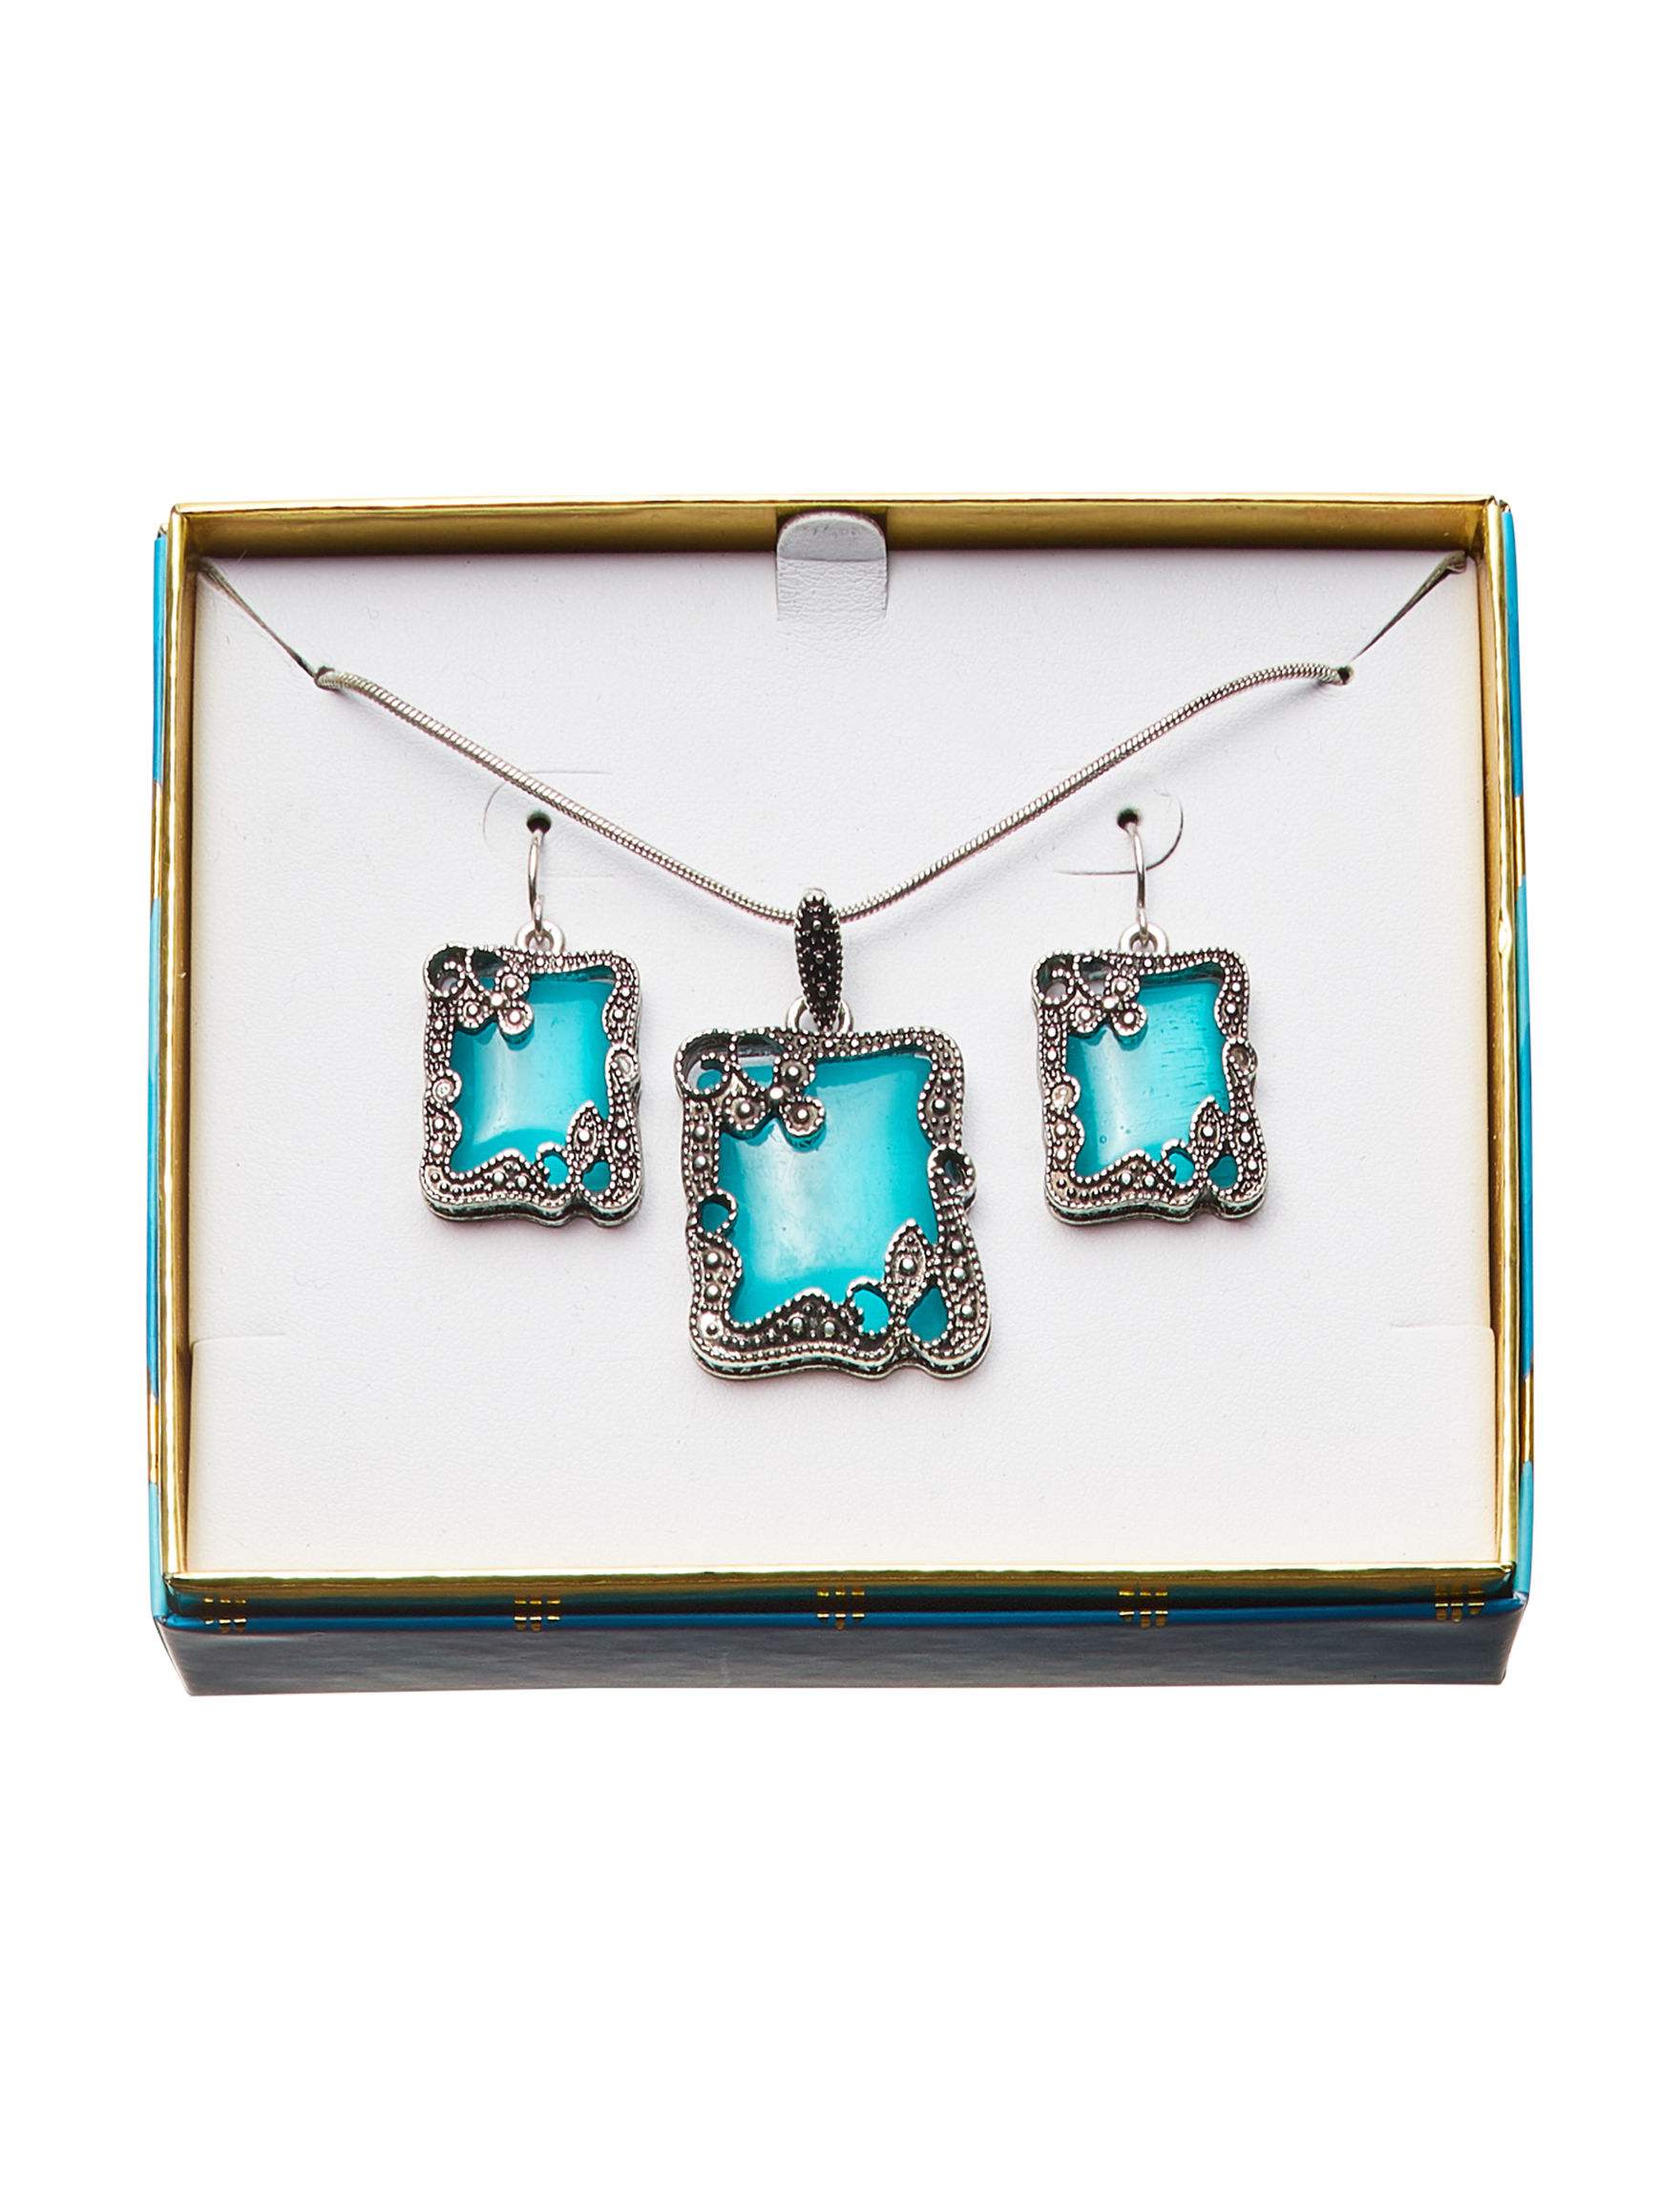 Tanya Silver Drops Earrings Necklaces & Pendants Fashion Jewelry